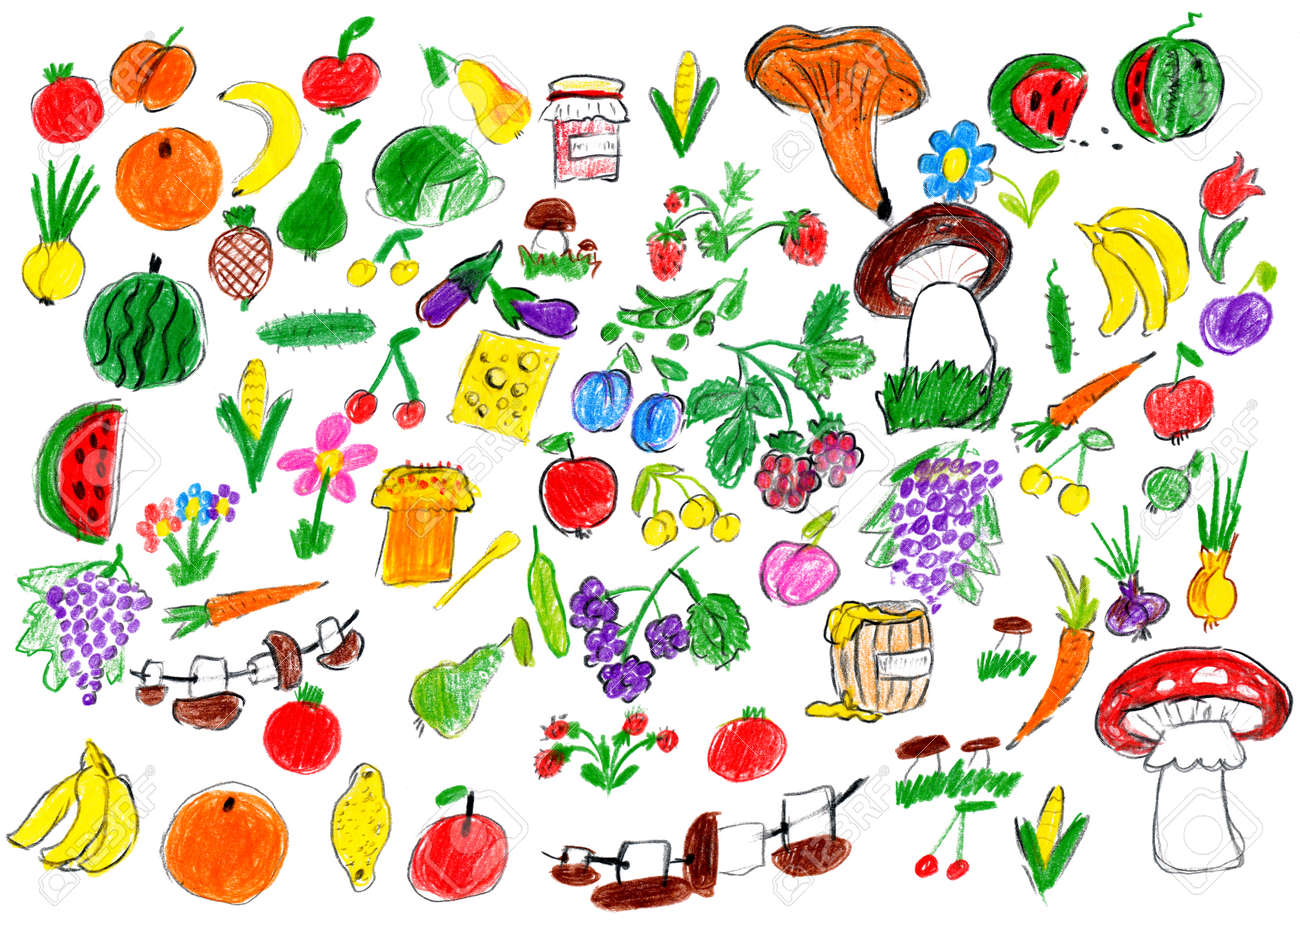 Cartoon Food Collection Fruit And Vegetables Child Drawing